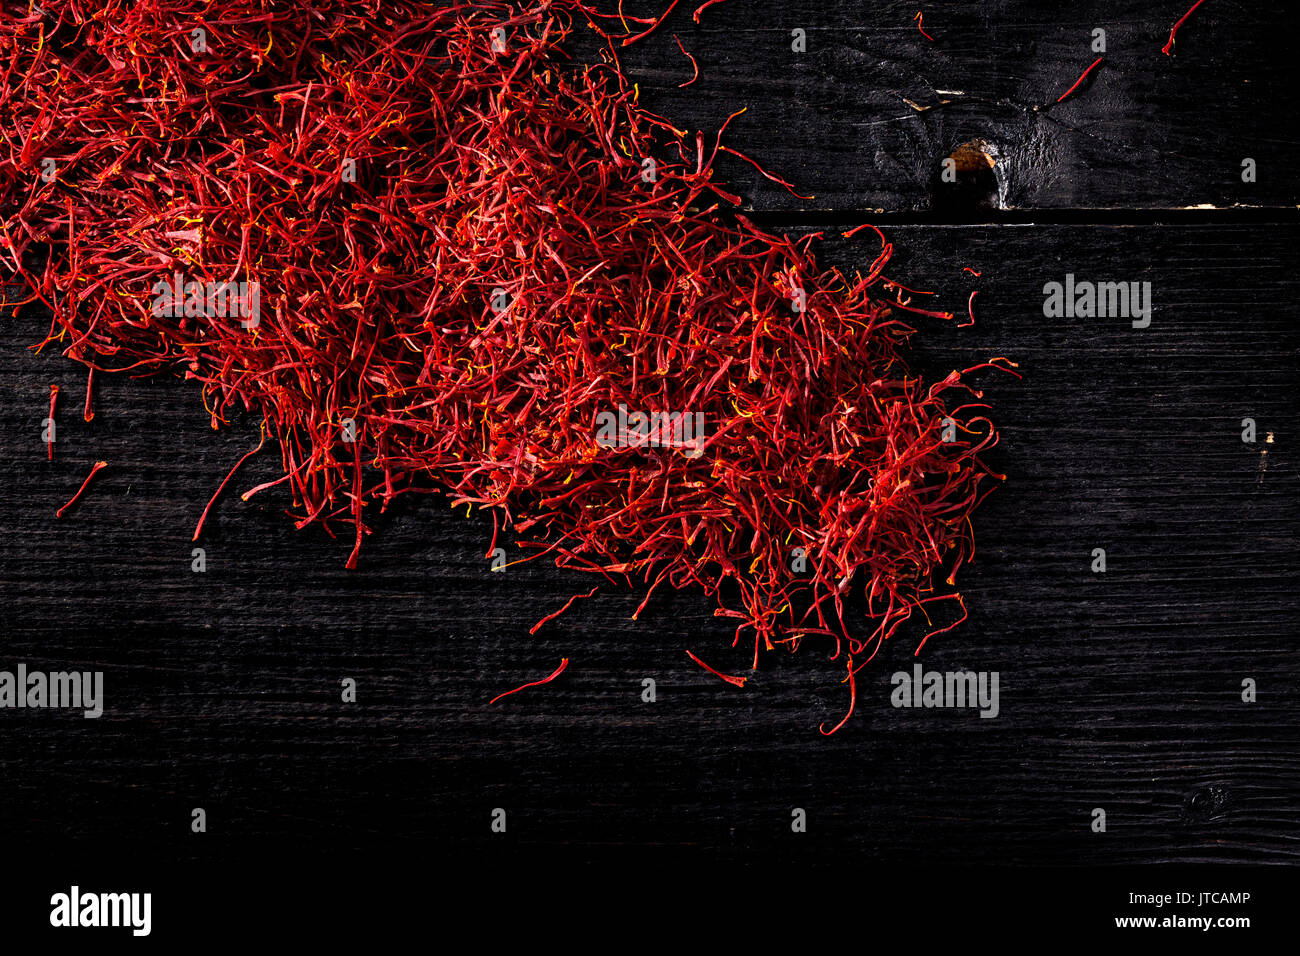 saffron crocus threads on black wooden board, view from above, backgrounds - Stock Image